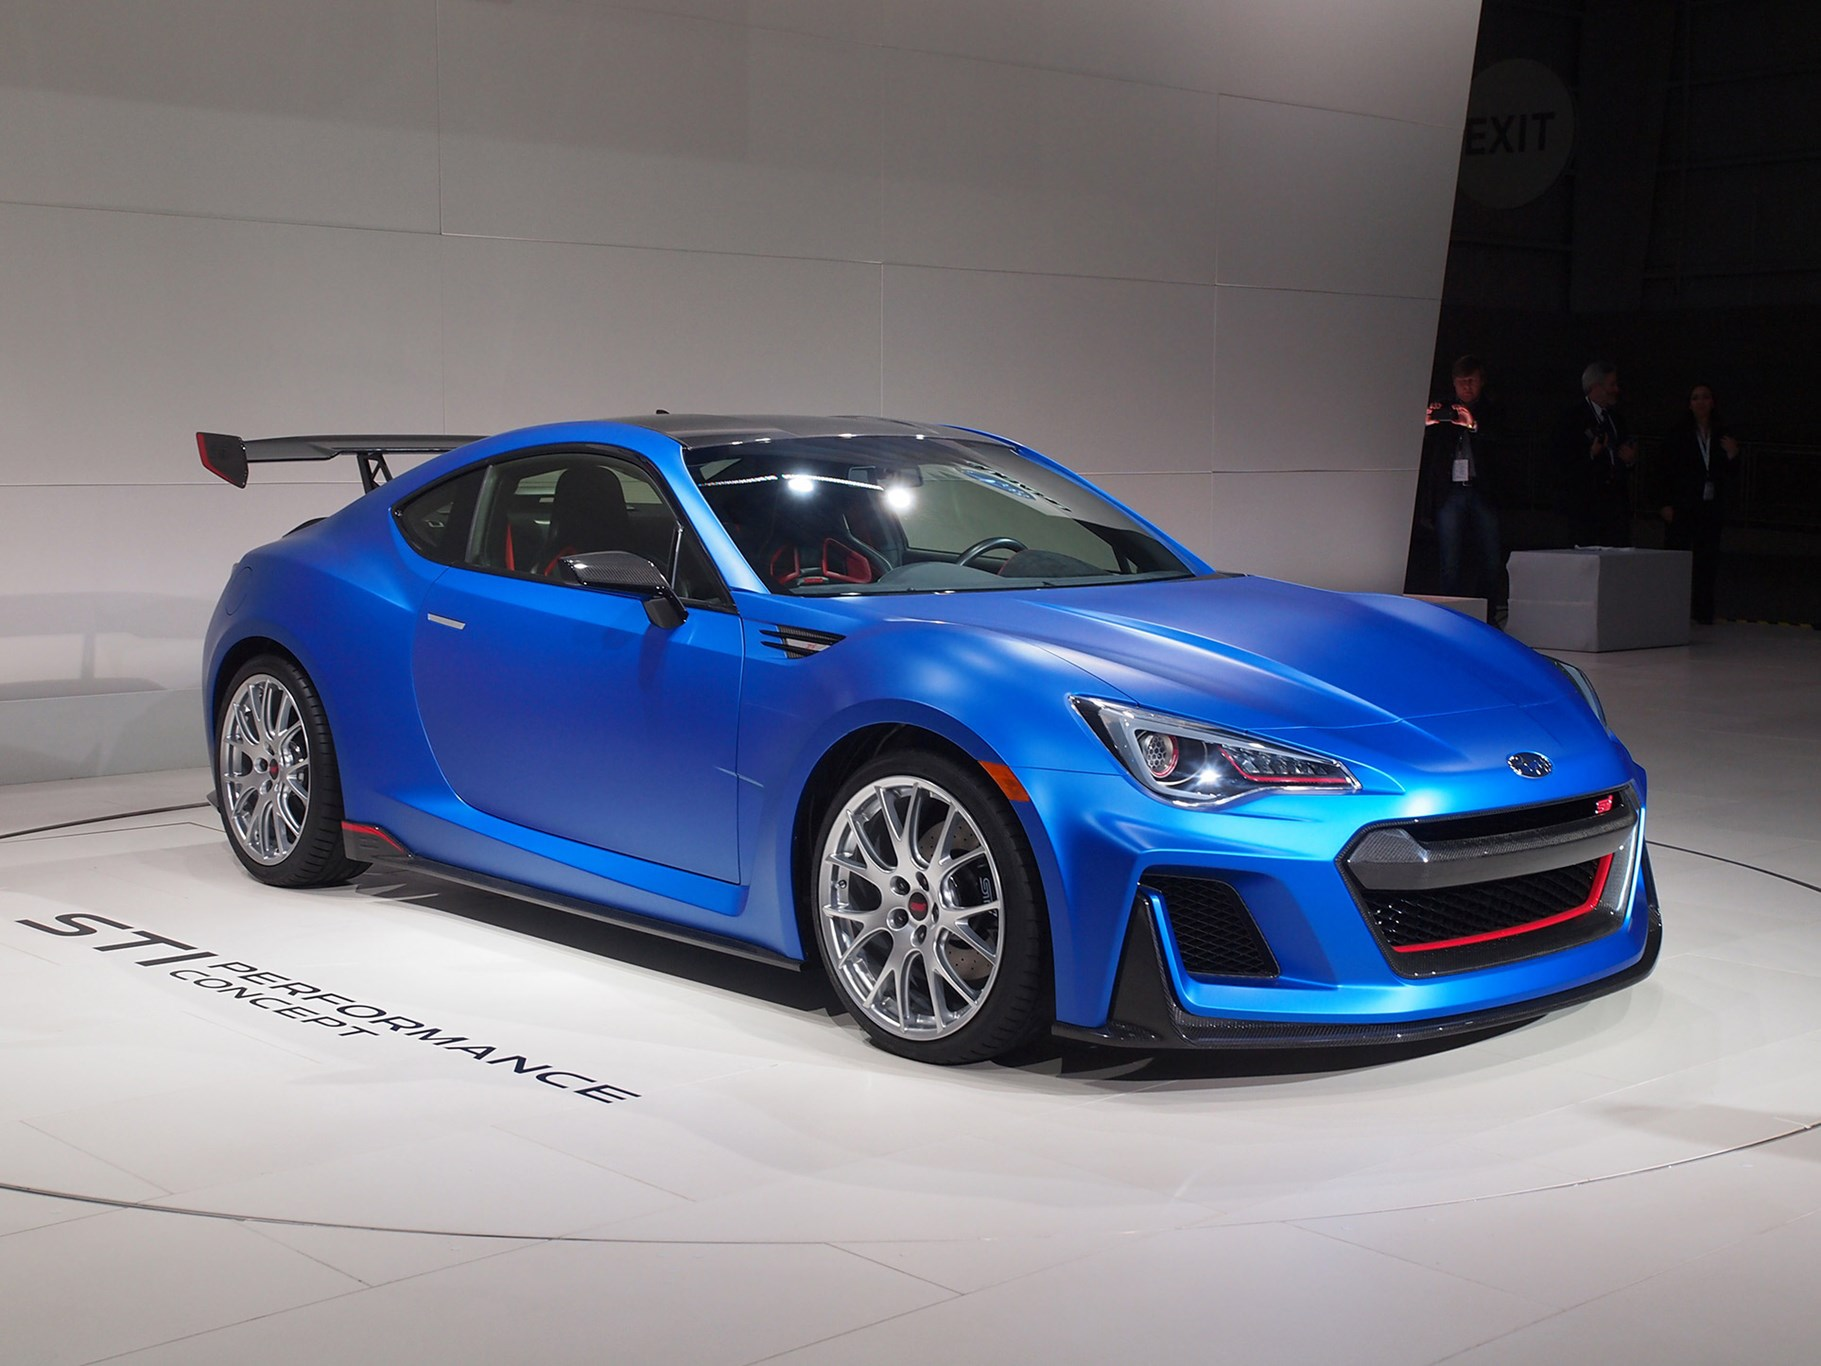 subaru brz by sti 300bhp coupe muscles into new york by car magazine. Black Bedroom Furniture Sets. Home Design Ideas